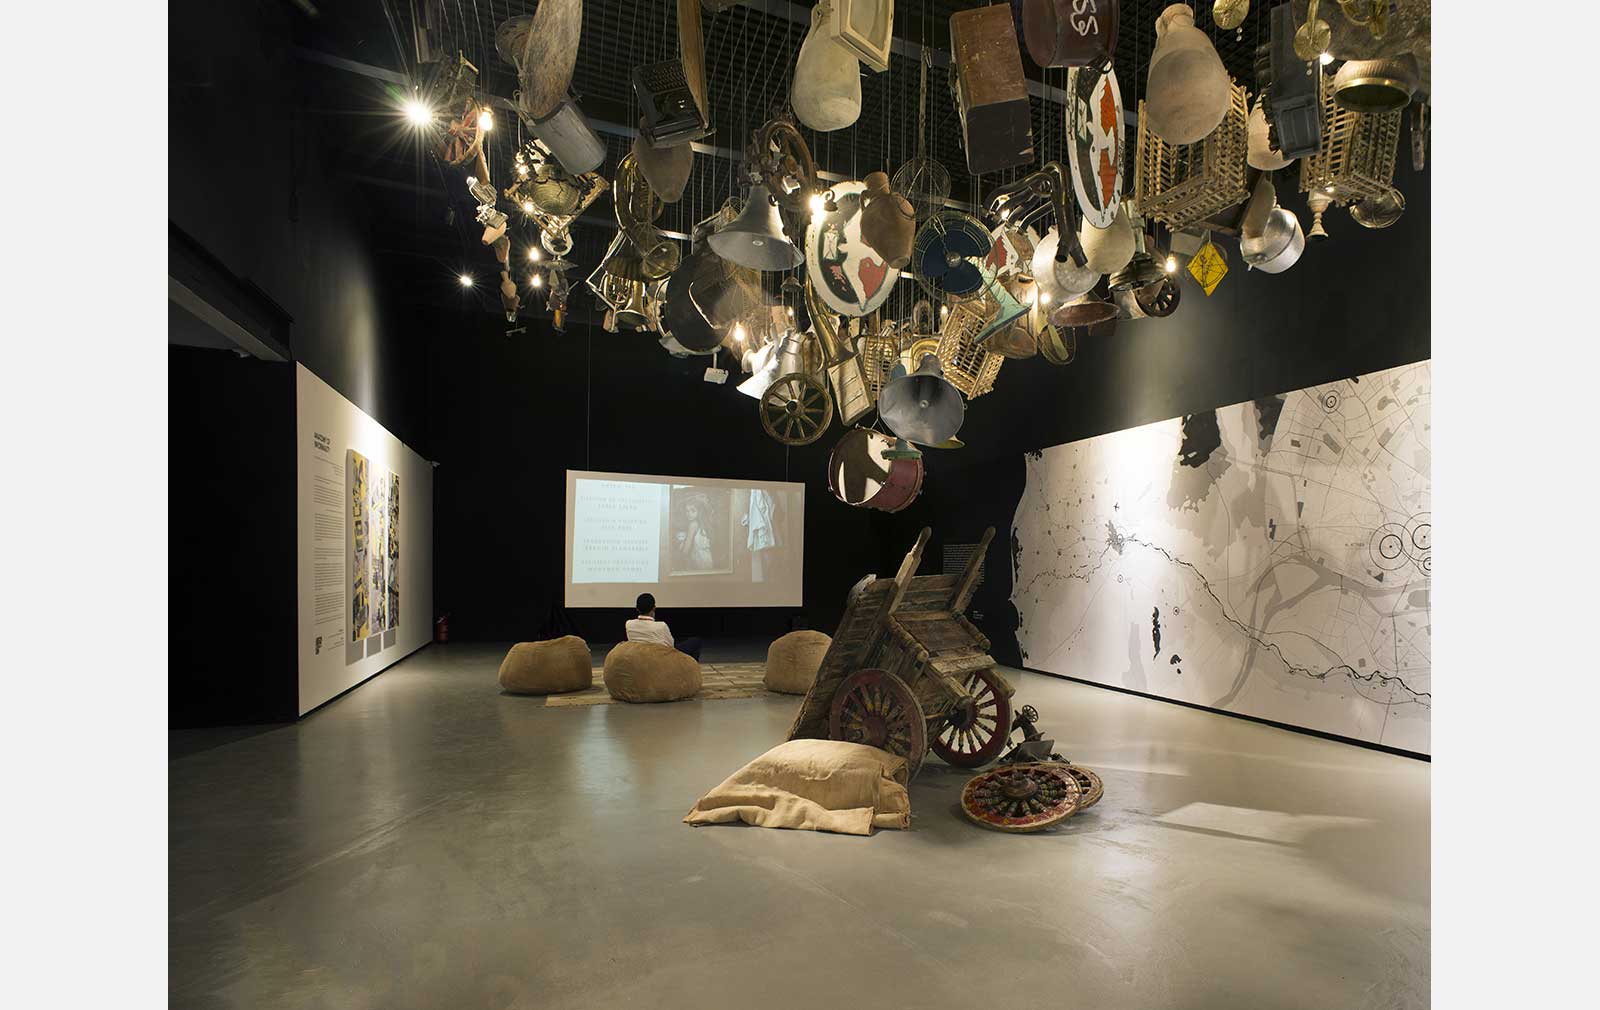 The Egyptian pavilion at the Venice Architecture Biennale